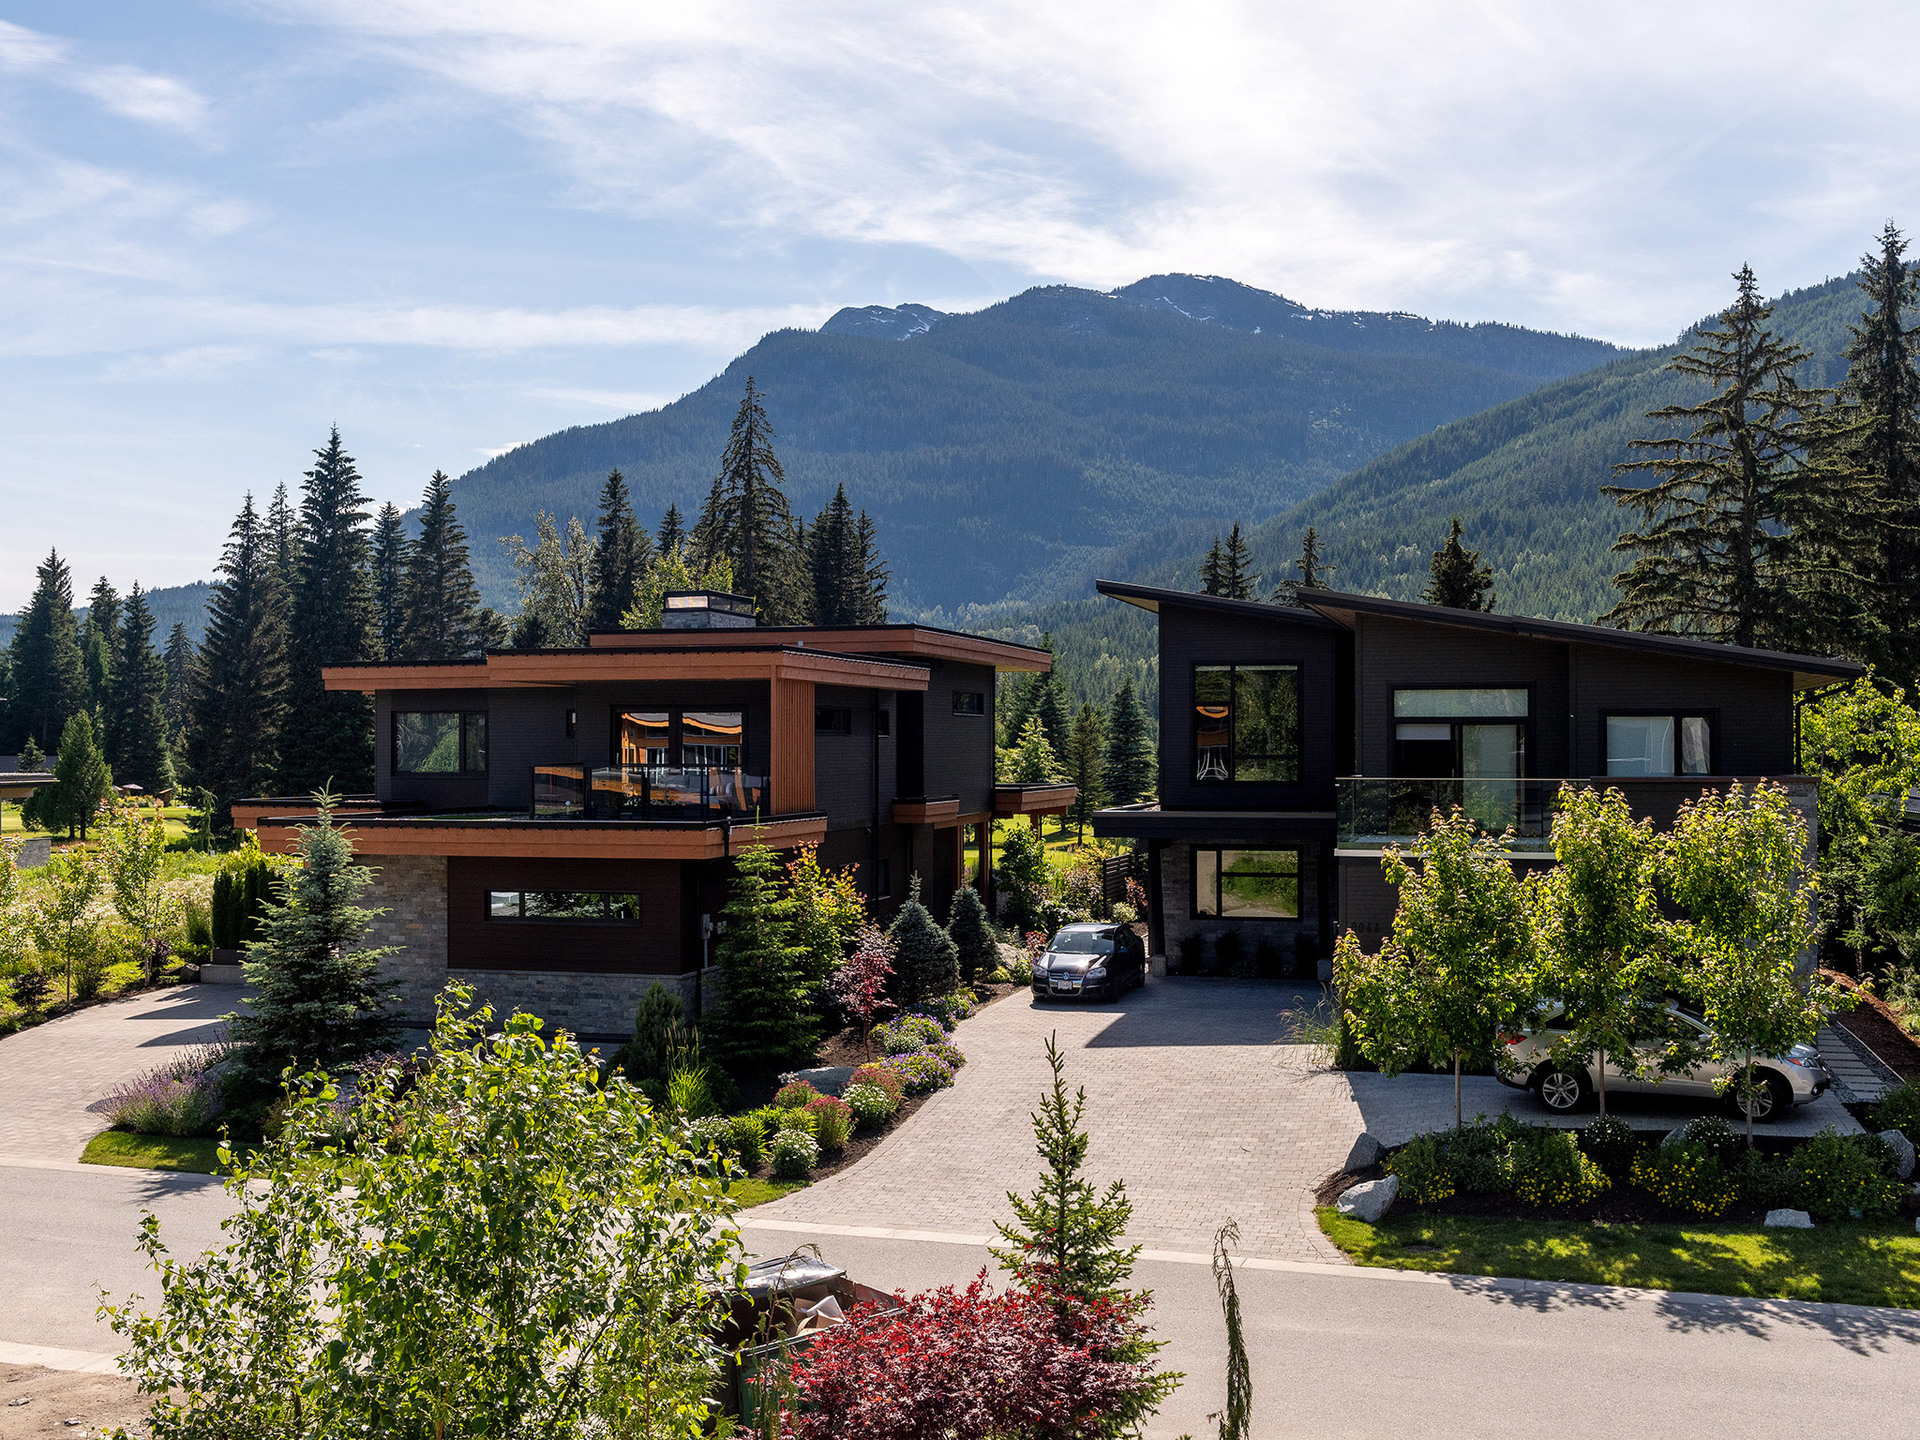 m29 at 8043 Cypress Place, Green Lake Estates, Whistler